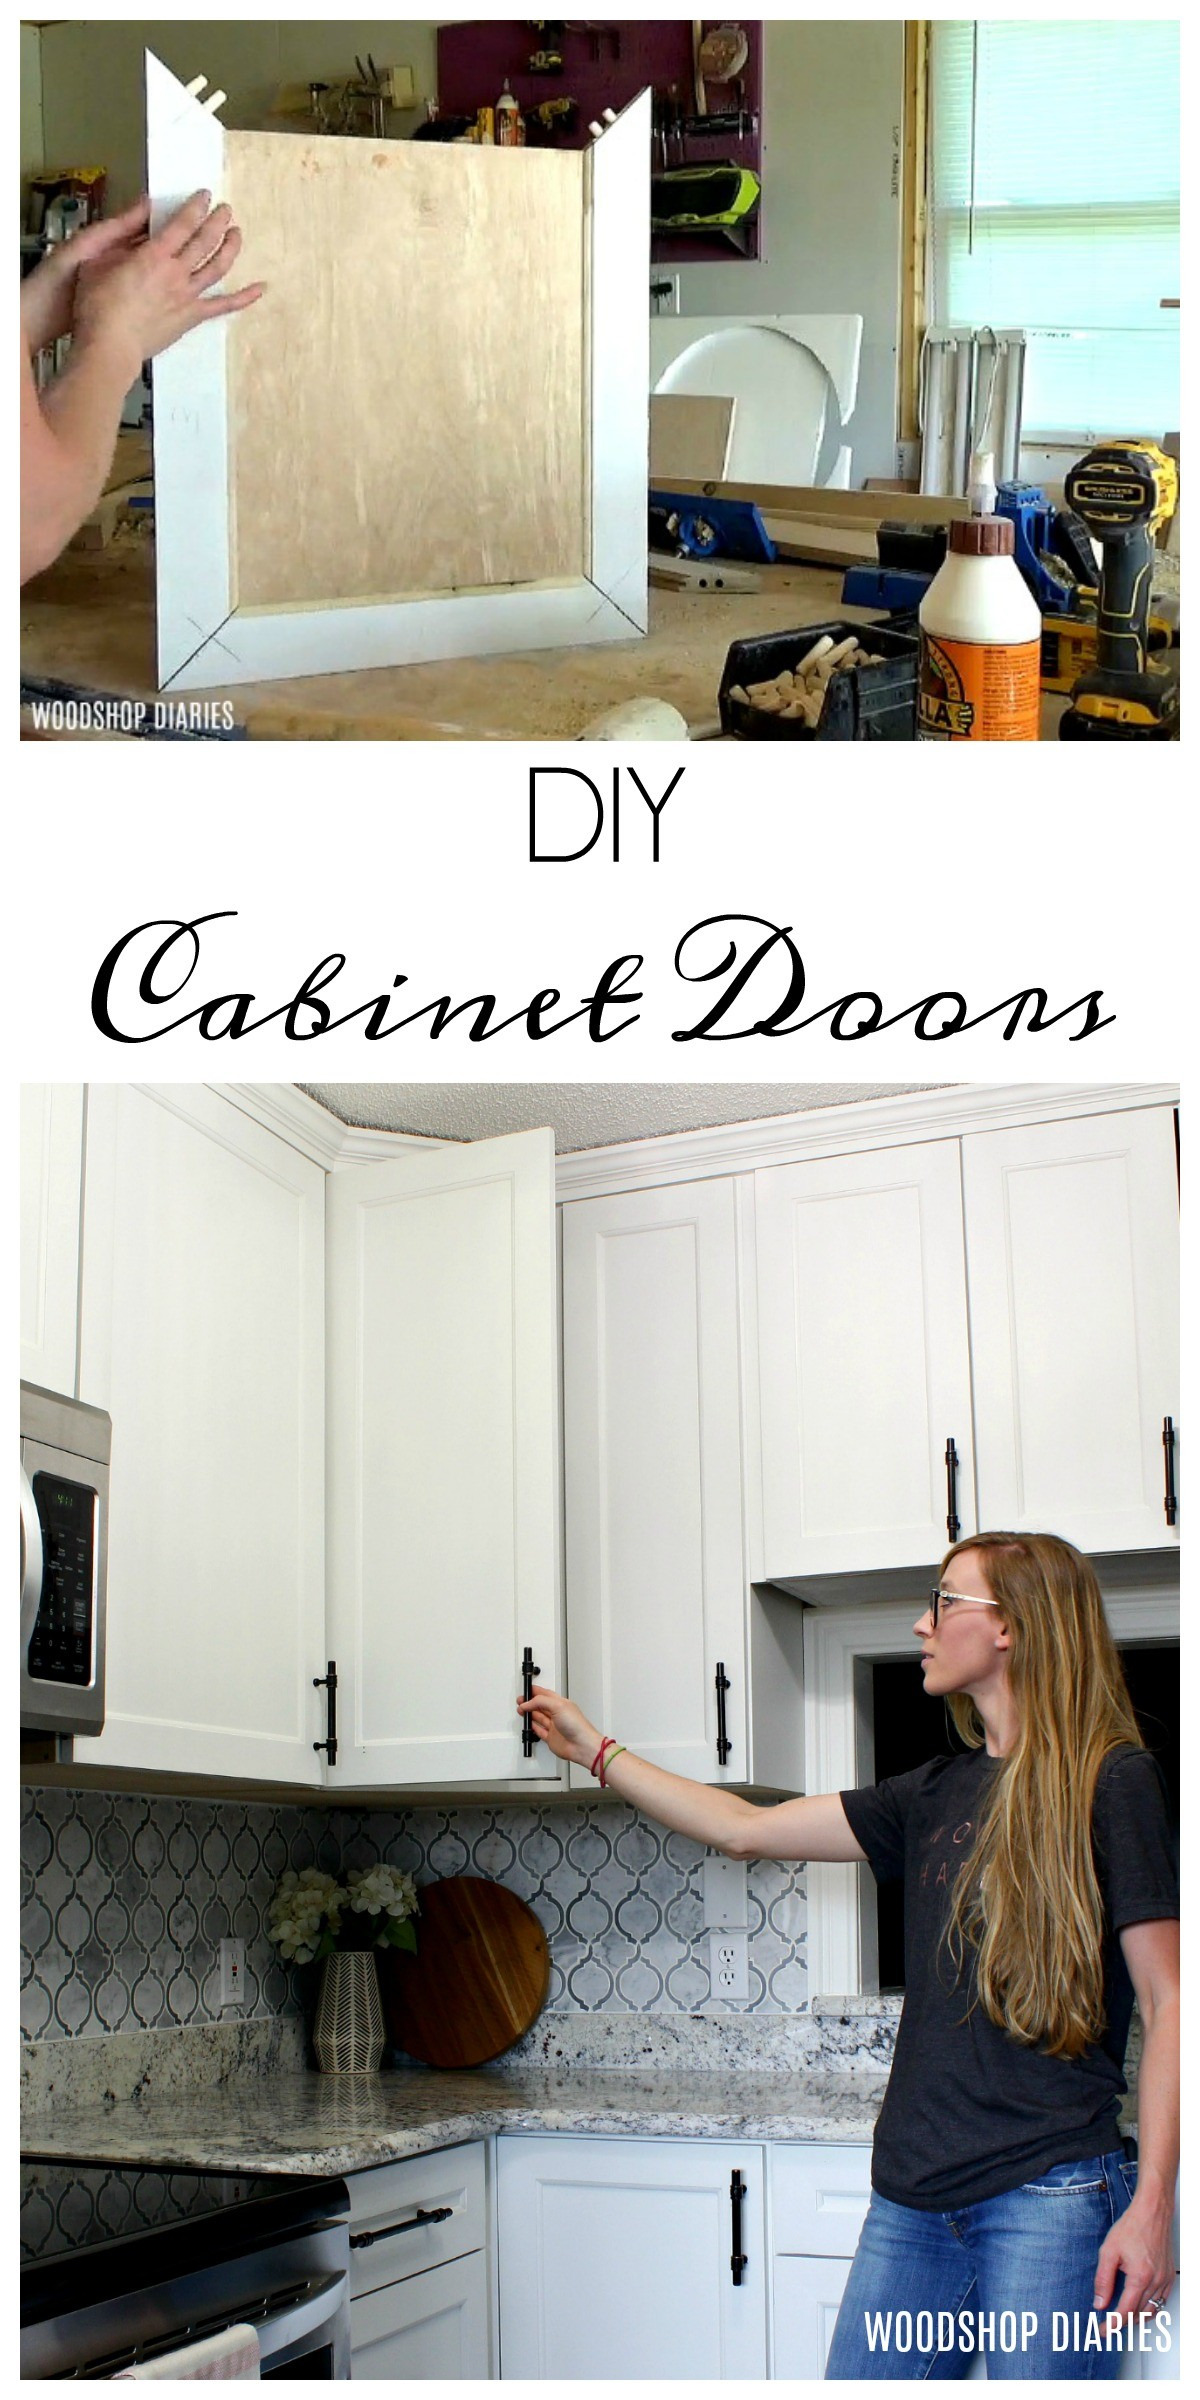 Router Bits for Cabinet Doors Luxury How to Make Diy Cabinet Doors without Fancy Router Bits